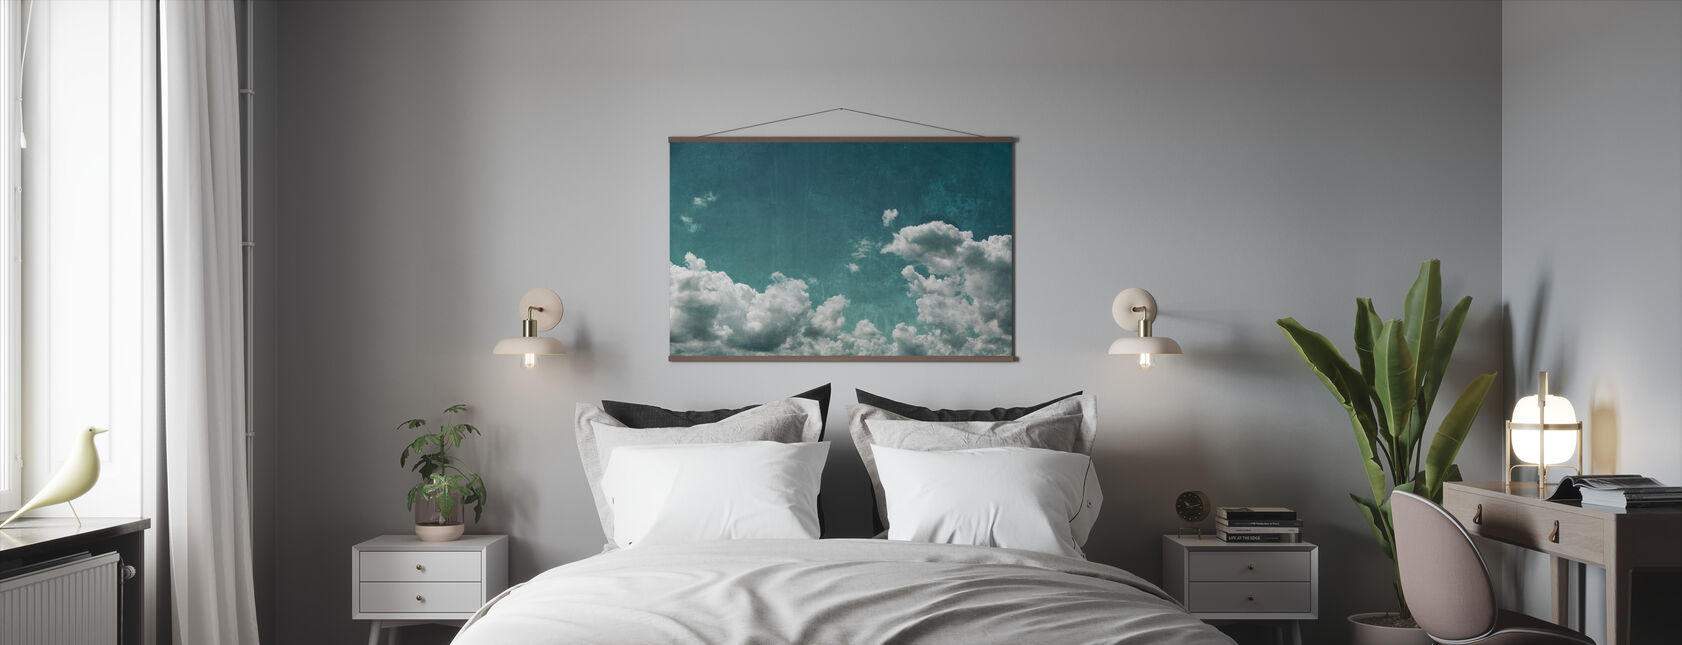 Textured Cloudy Sky - Poster - Bedroom